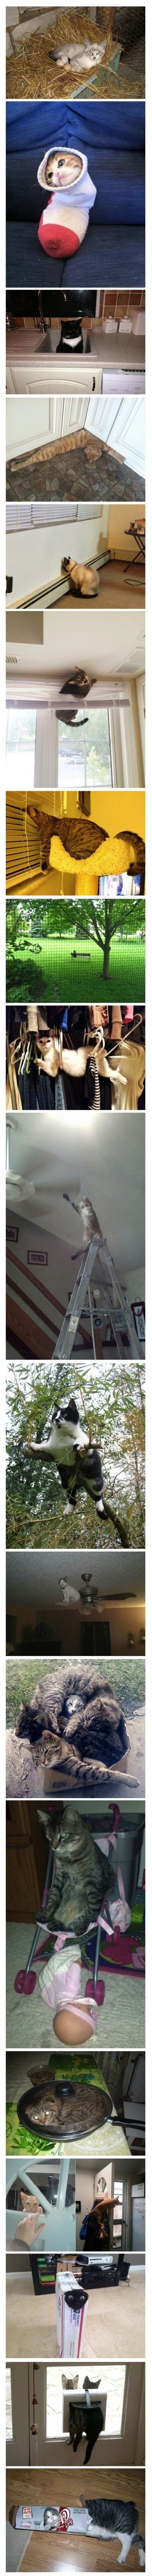 They shouldn't be here – Cats in Awkward Places